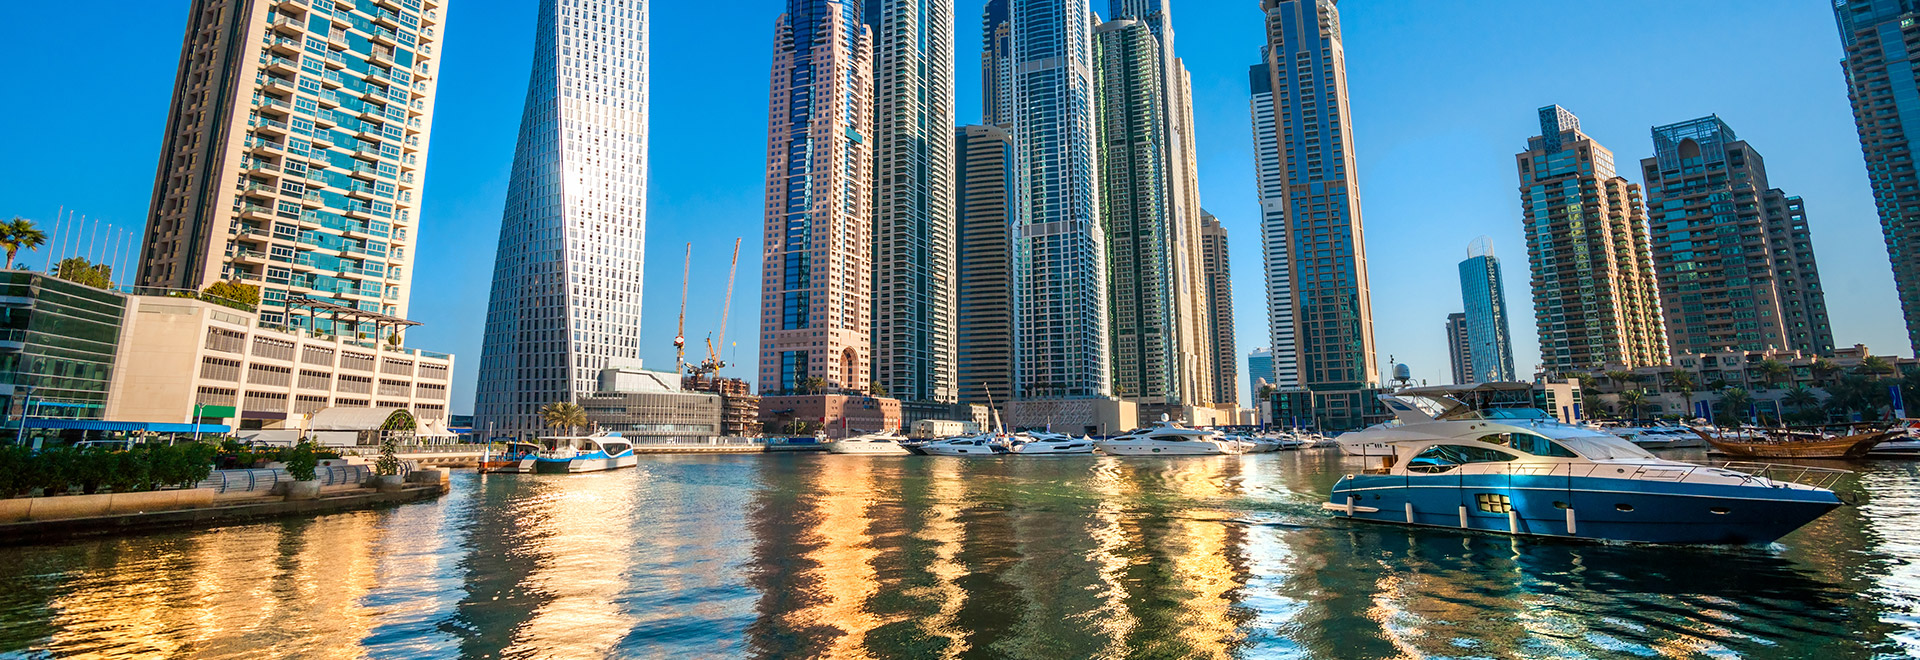 Dubai Marina And Jumeirah Beach Resort